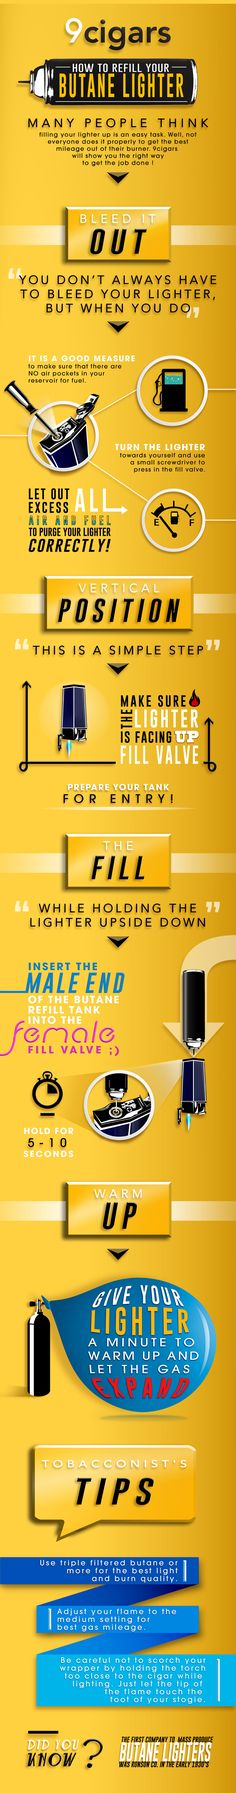 How to Refill Your Butane Cigar Lighter Infographic